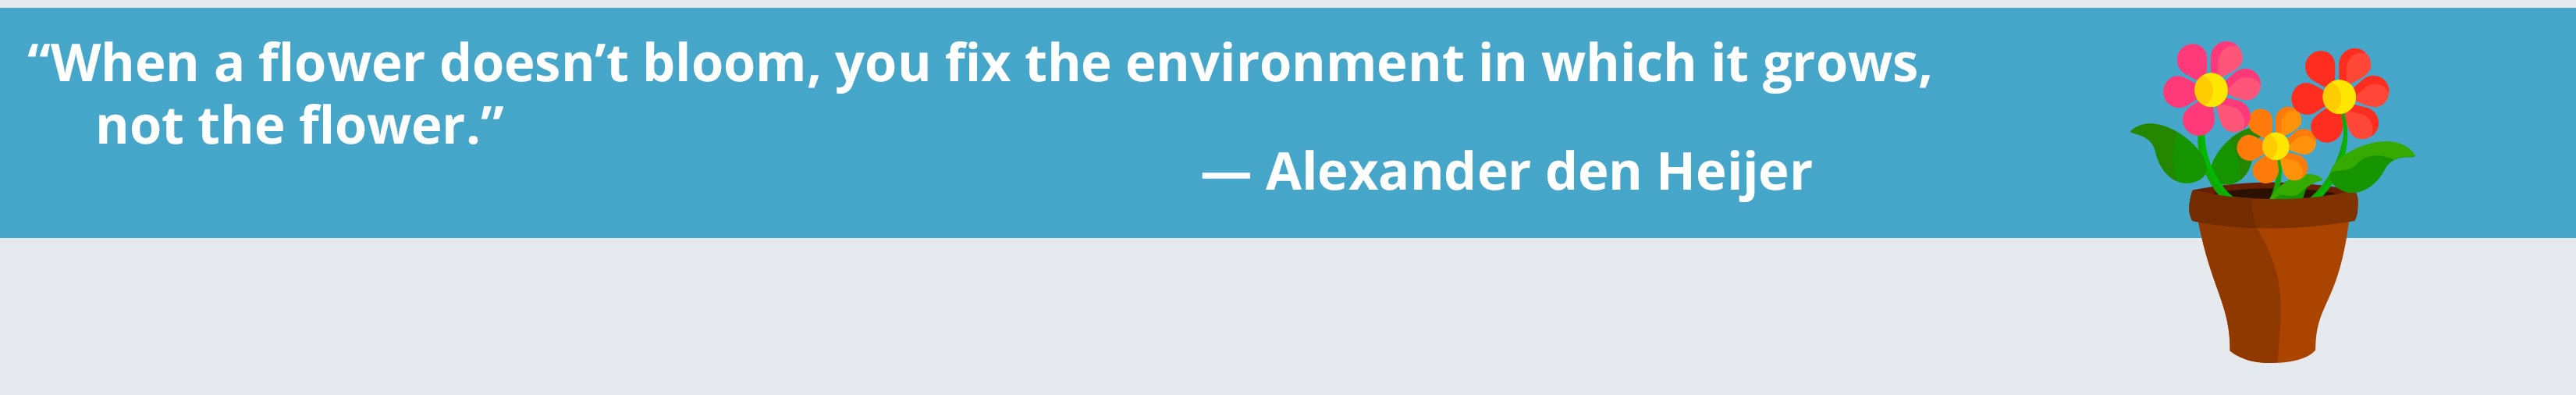 Alexander den Heijer quote about educational equity